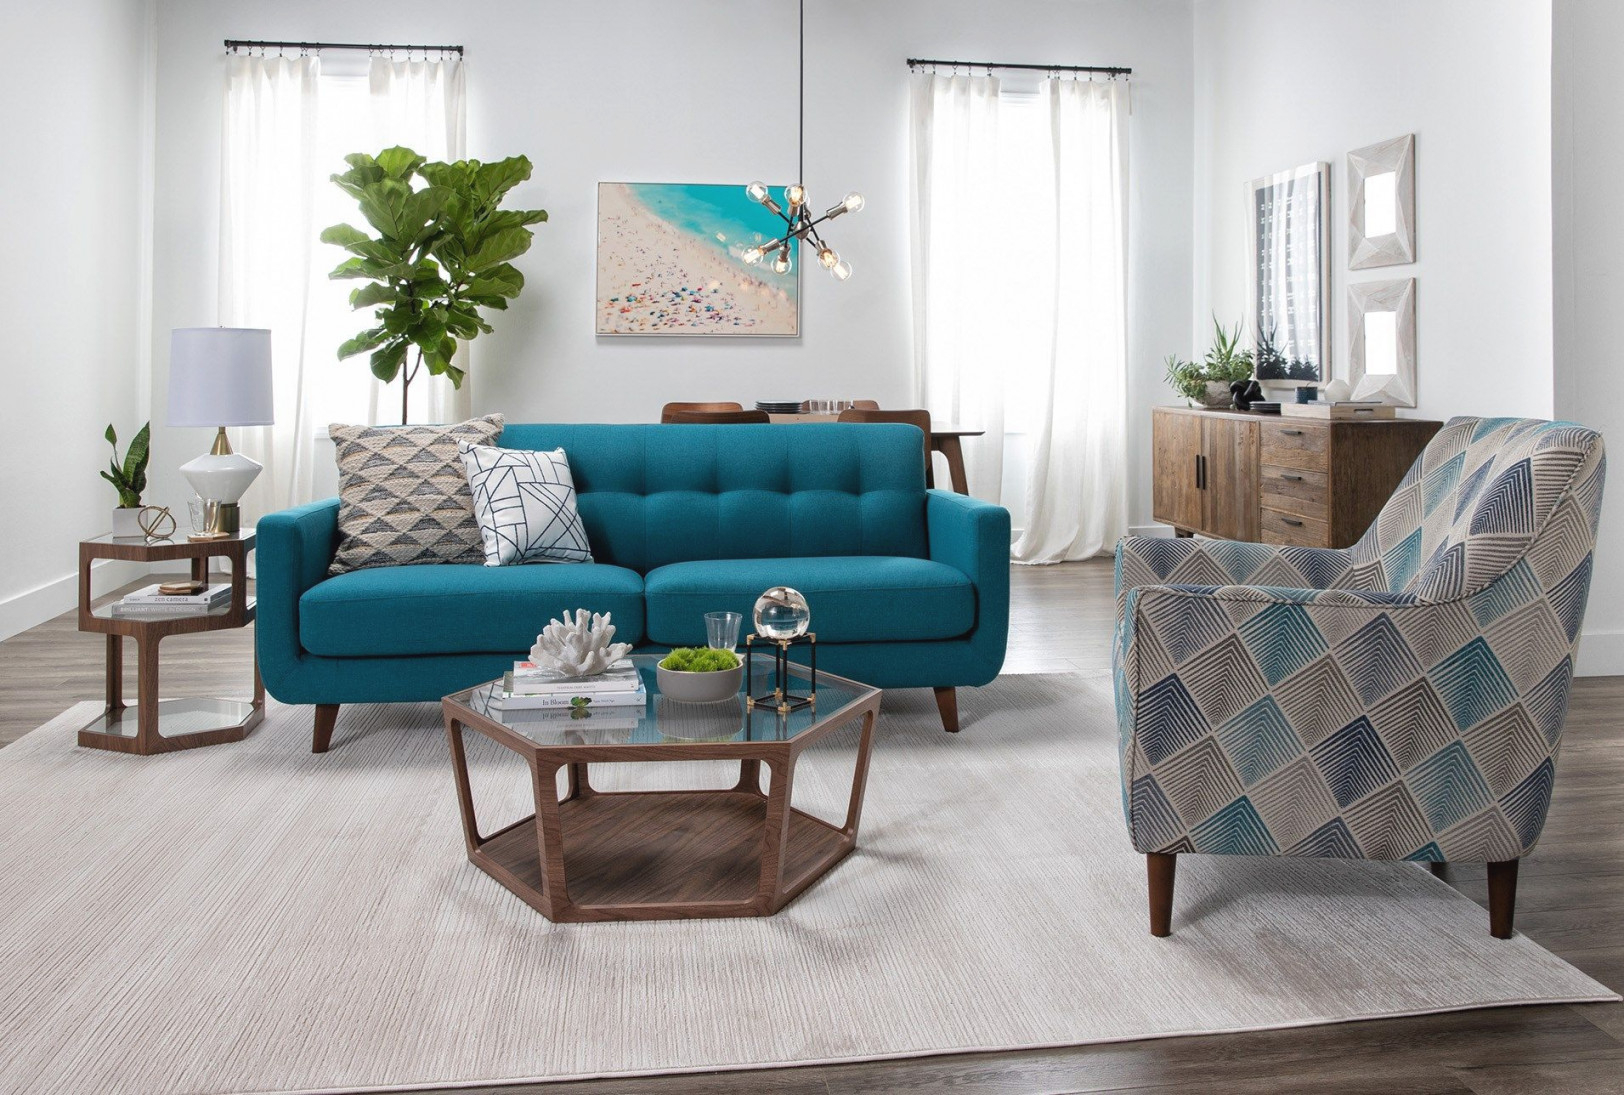 25+ Exceptional Teal Living Room Ideas For Your Dramatic Homes within Gray And Teal Living Room